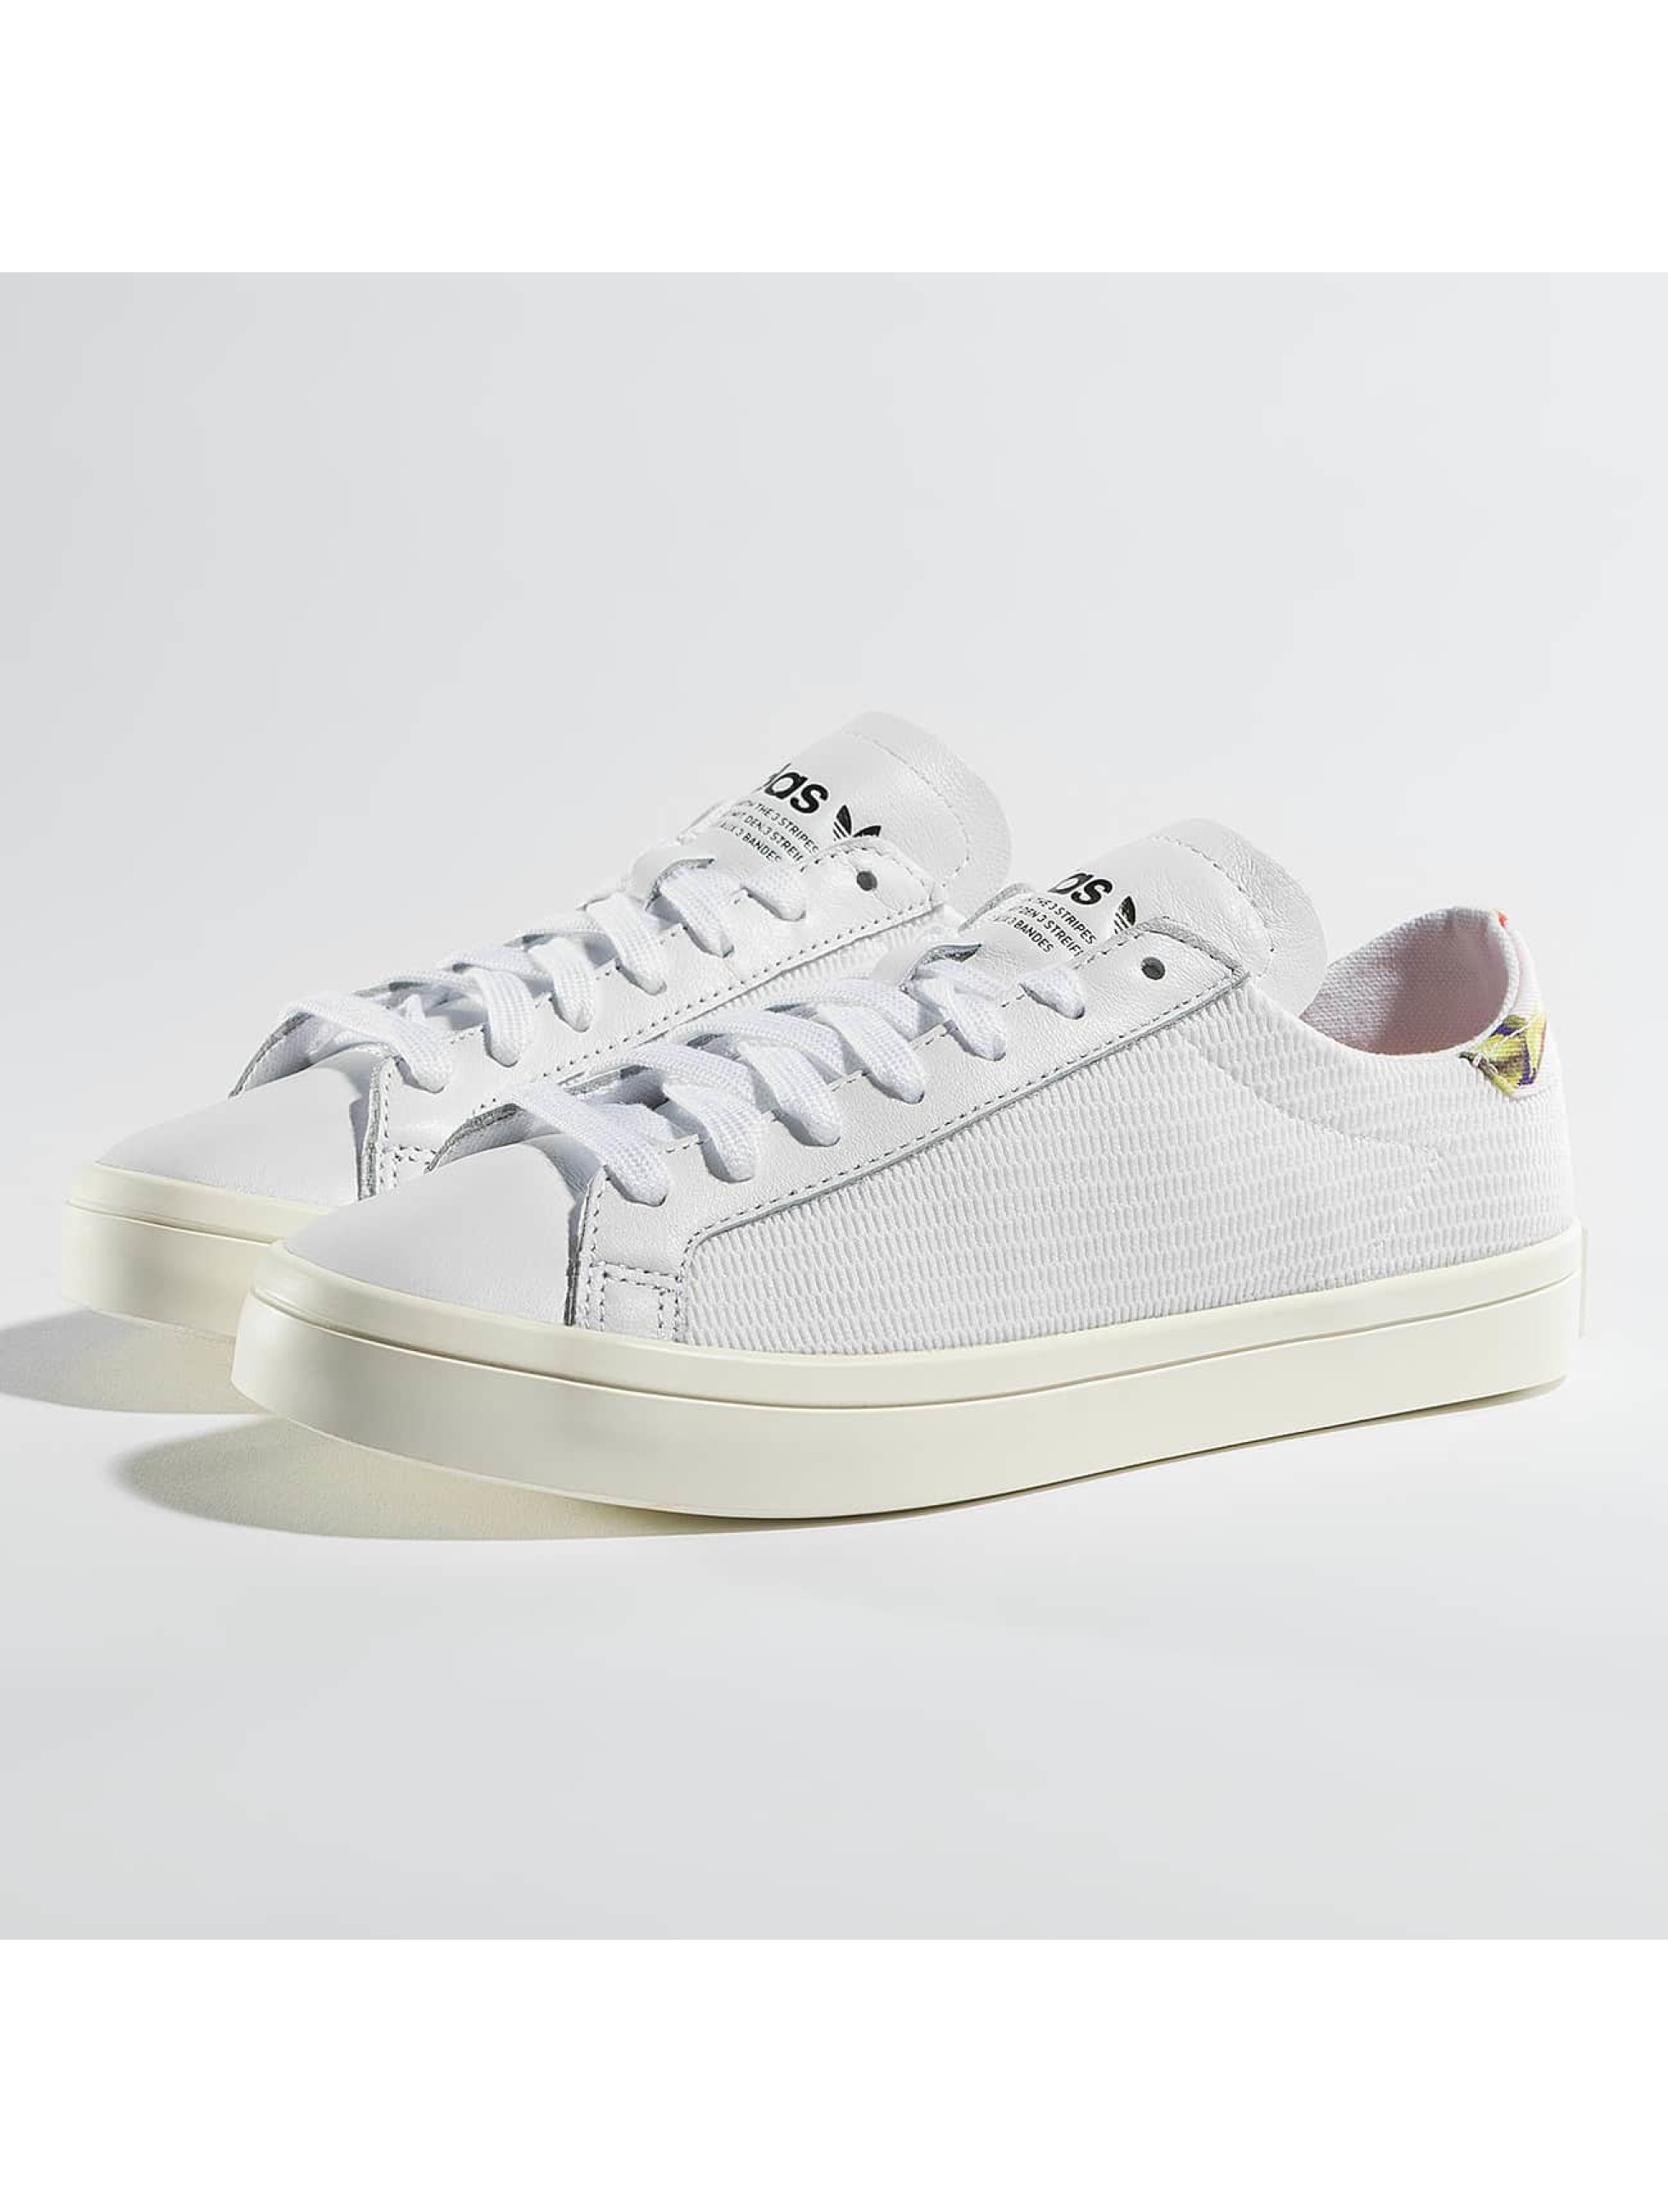 adidas Sneakers Courtvantage W white